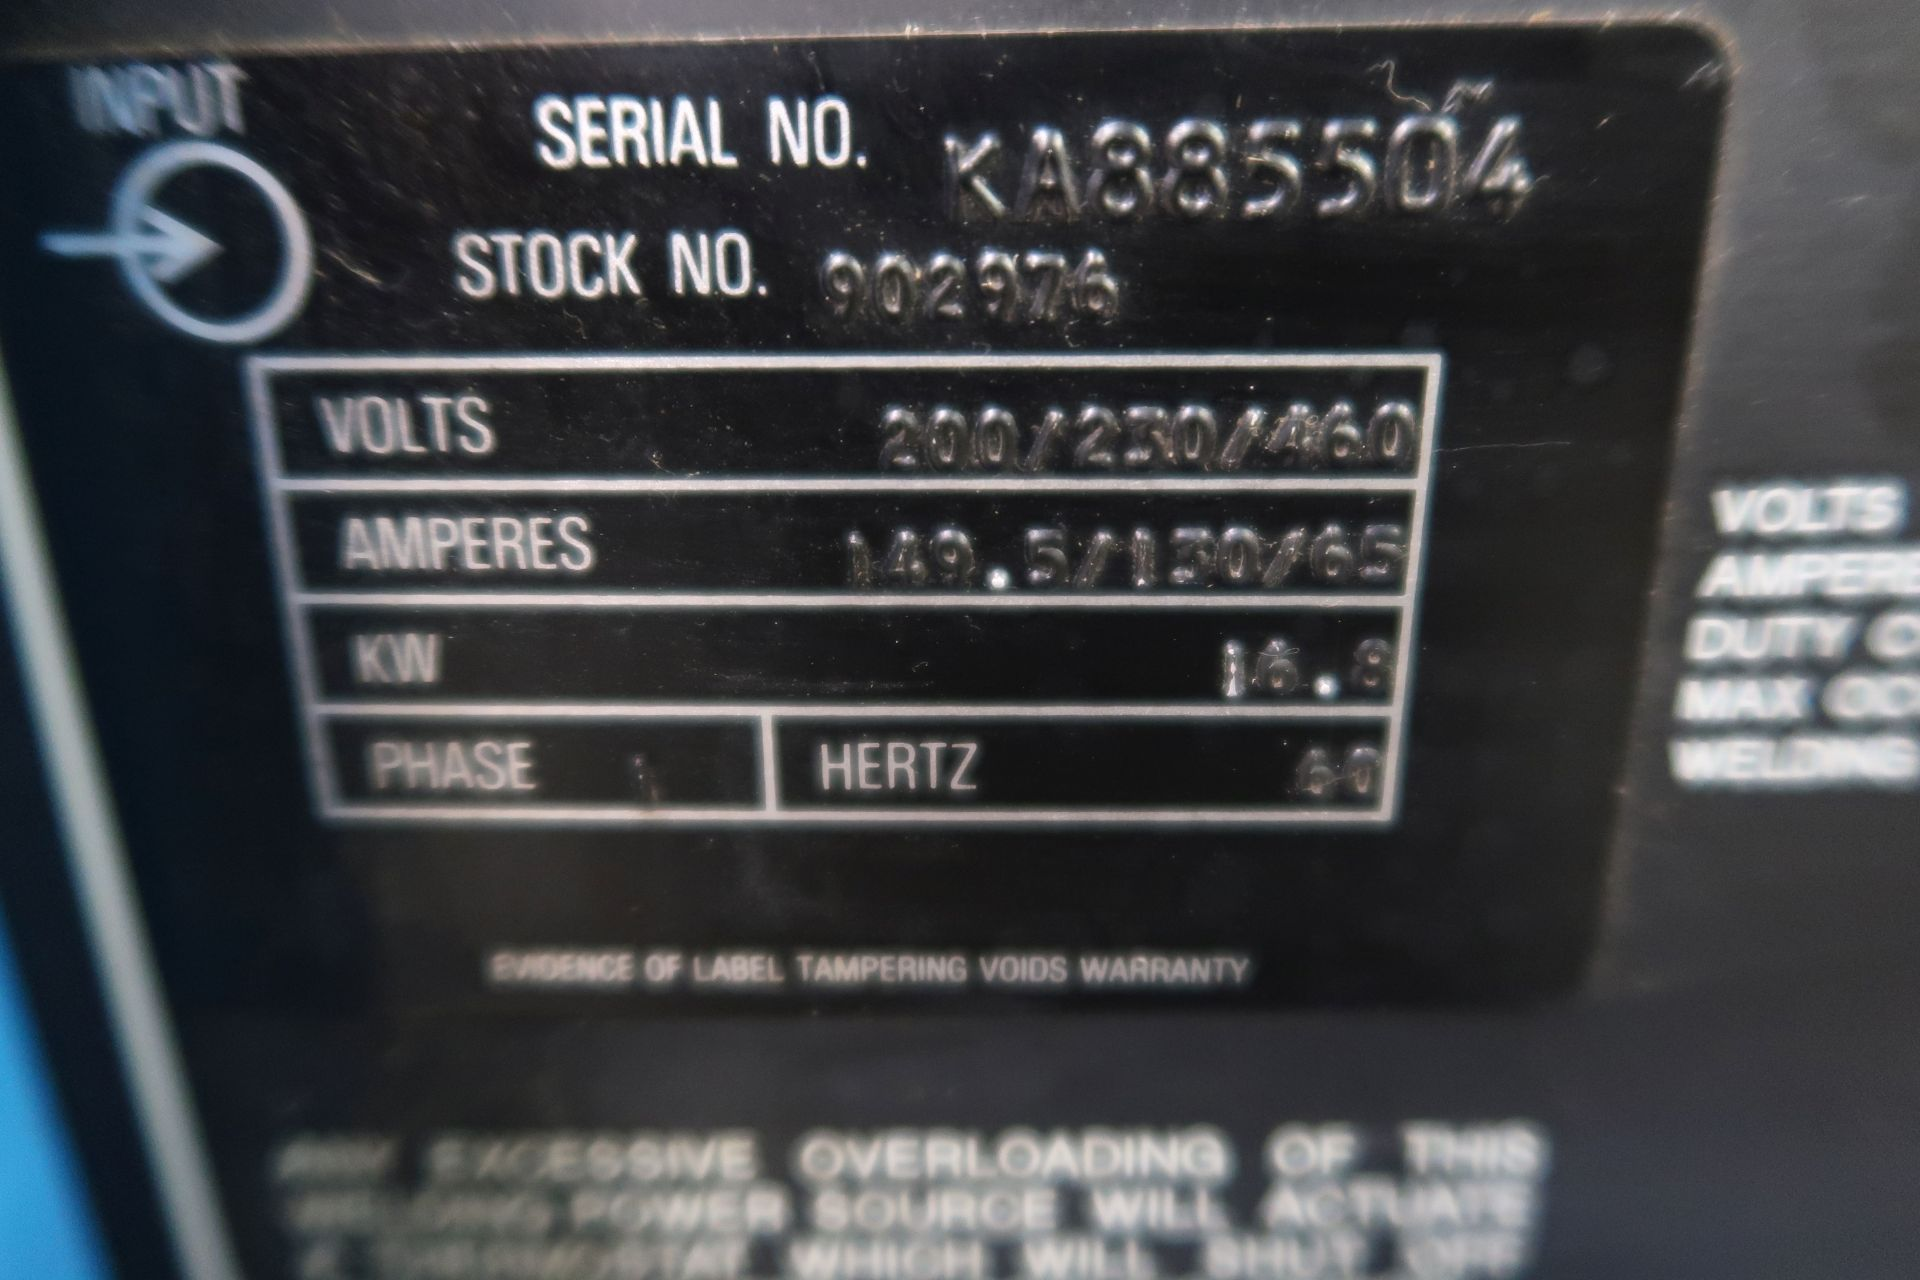 350 AMP MILLER SYNCROWAVE 350 CONSTANT CURRENT AC/DC ARC WELDING POWER SOURCE; S/N KA885504, WITH - Image 5 of 5